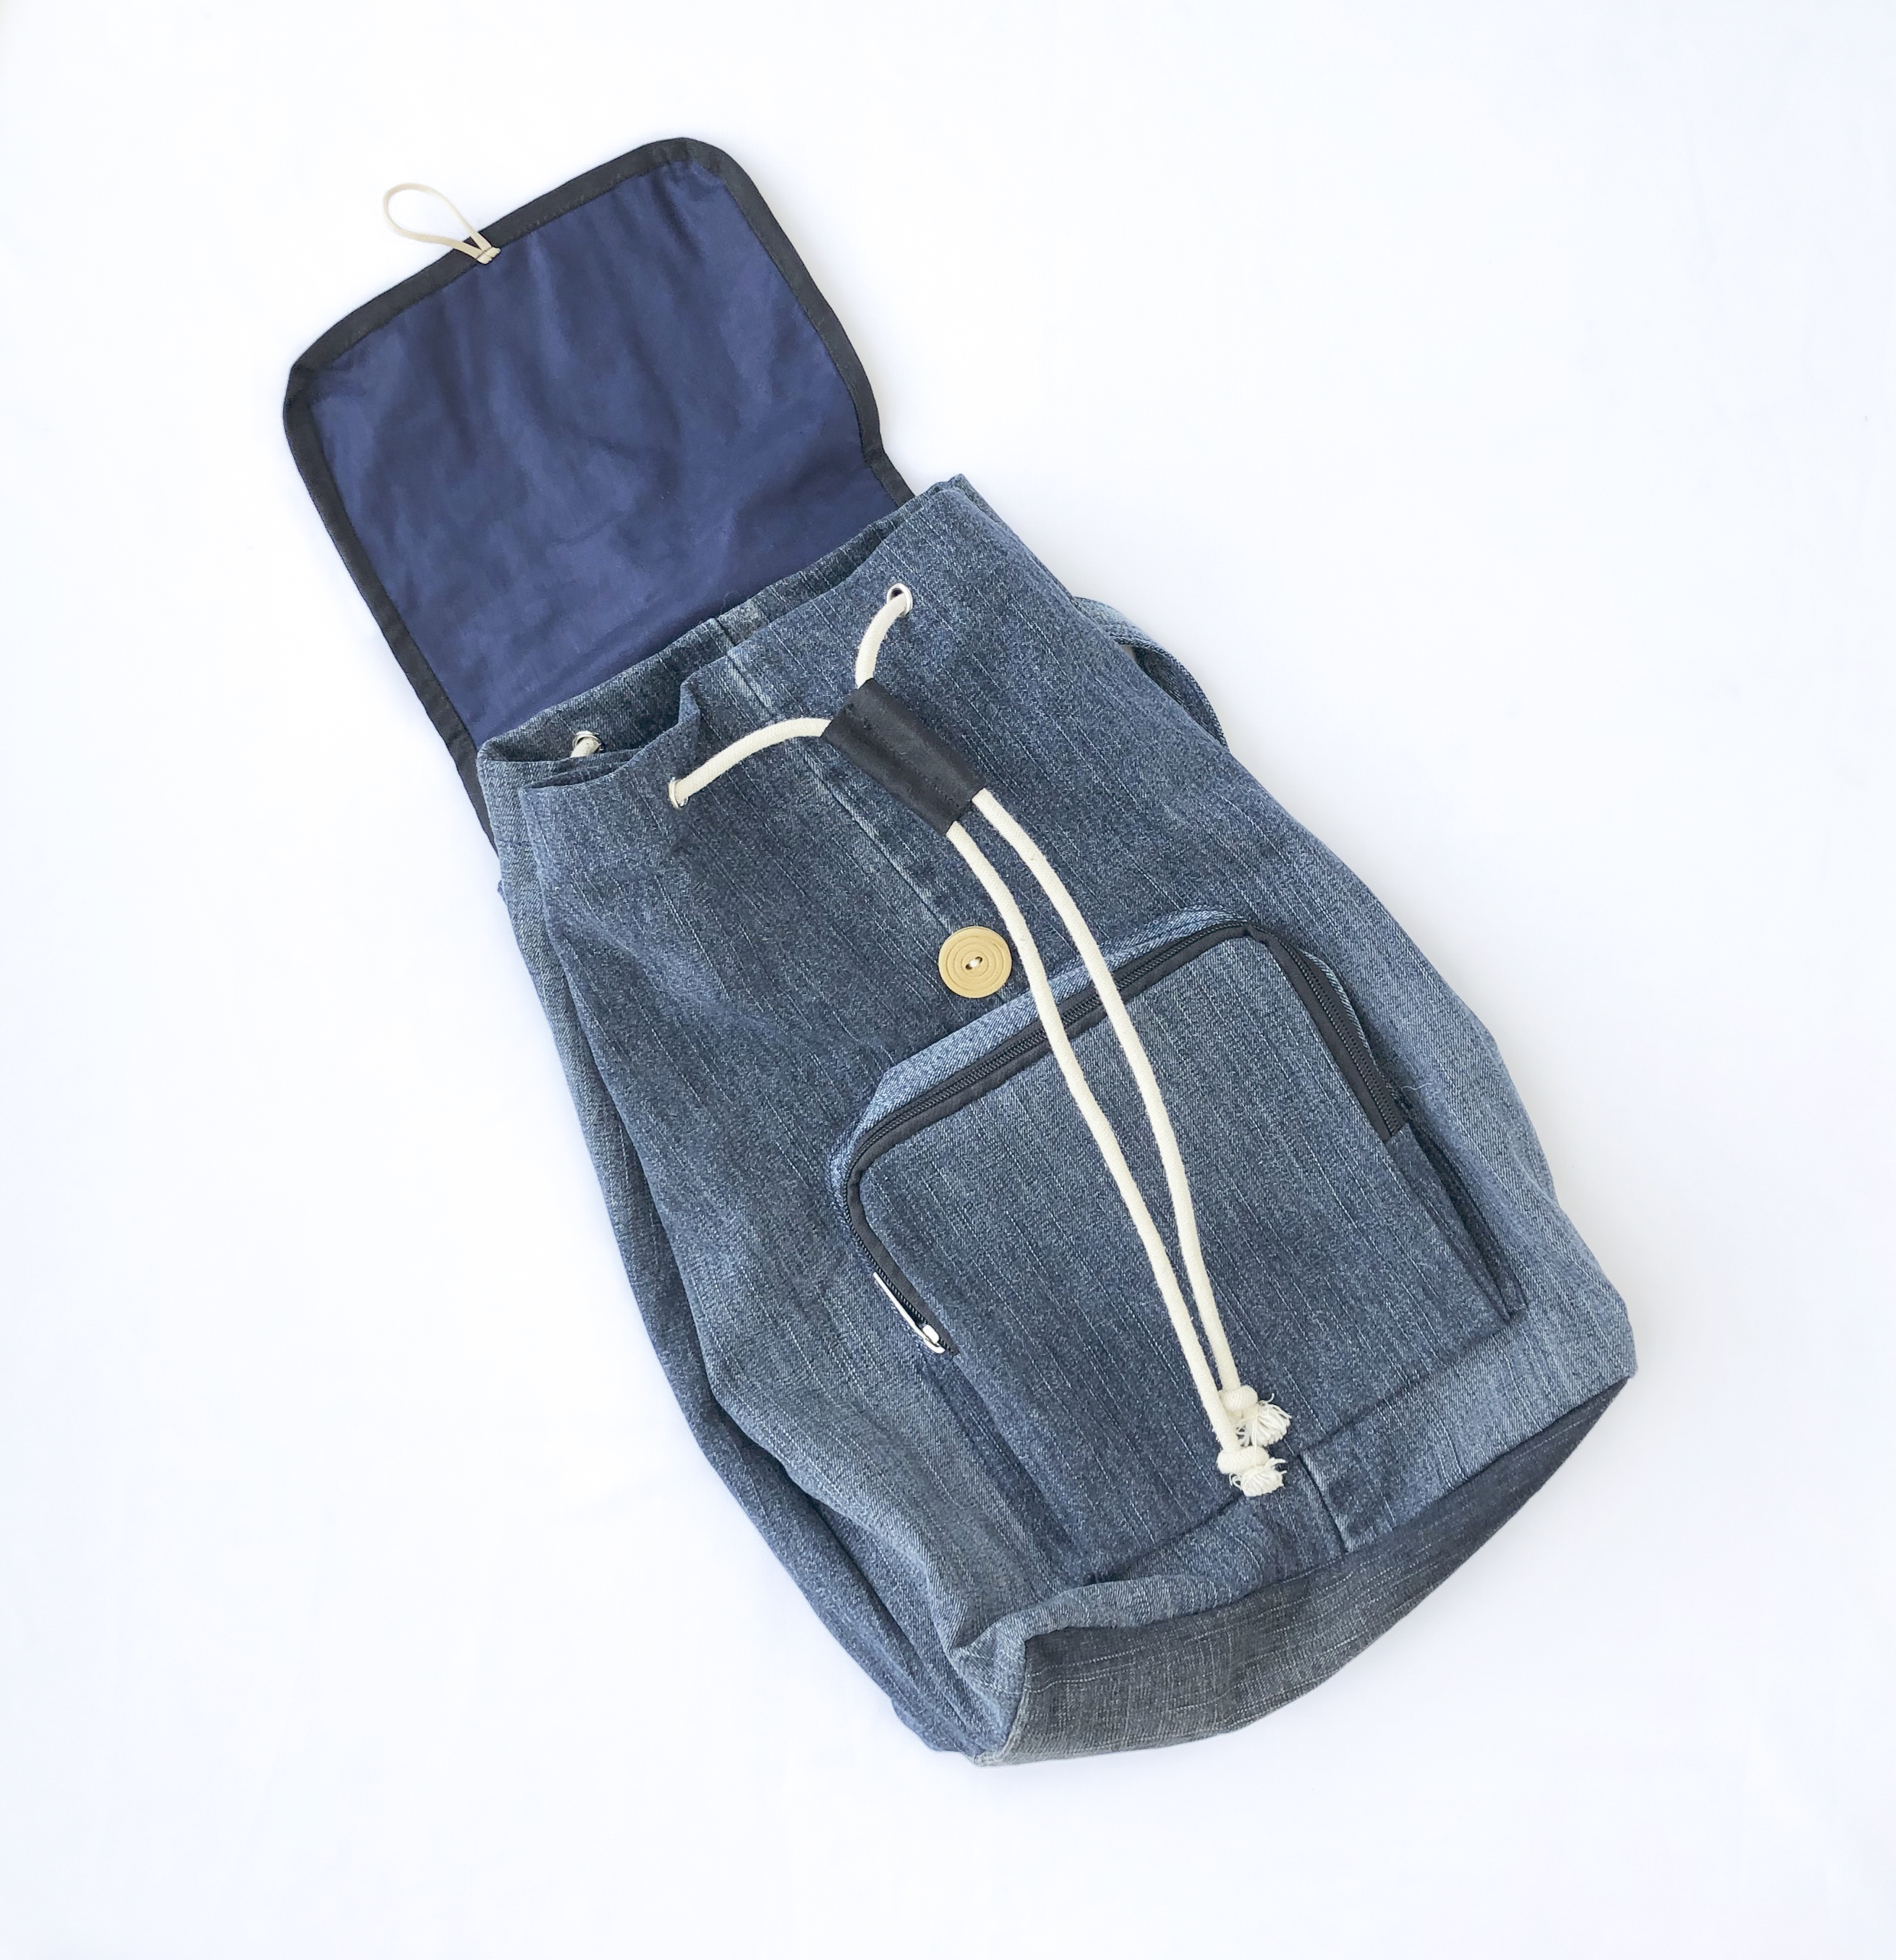 Denim Backpack With Flap Rimagined